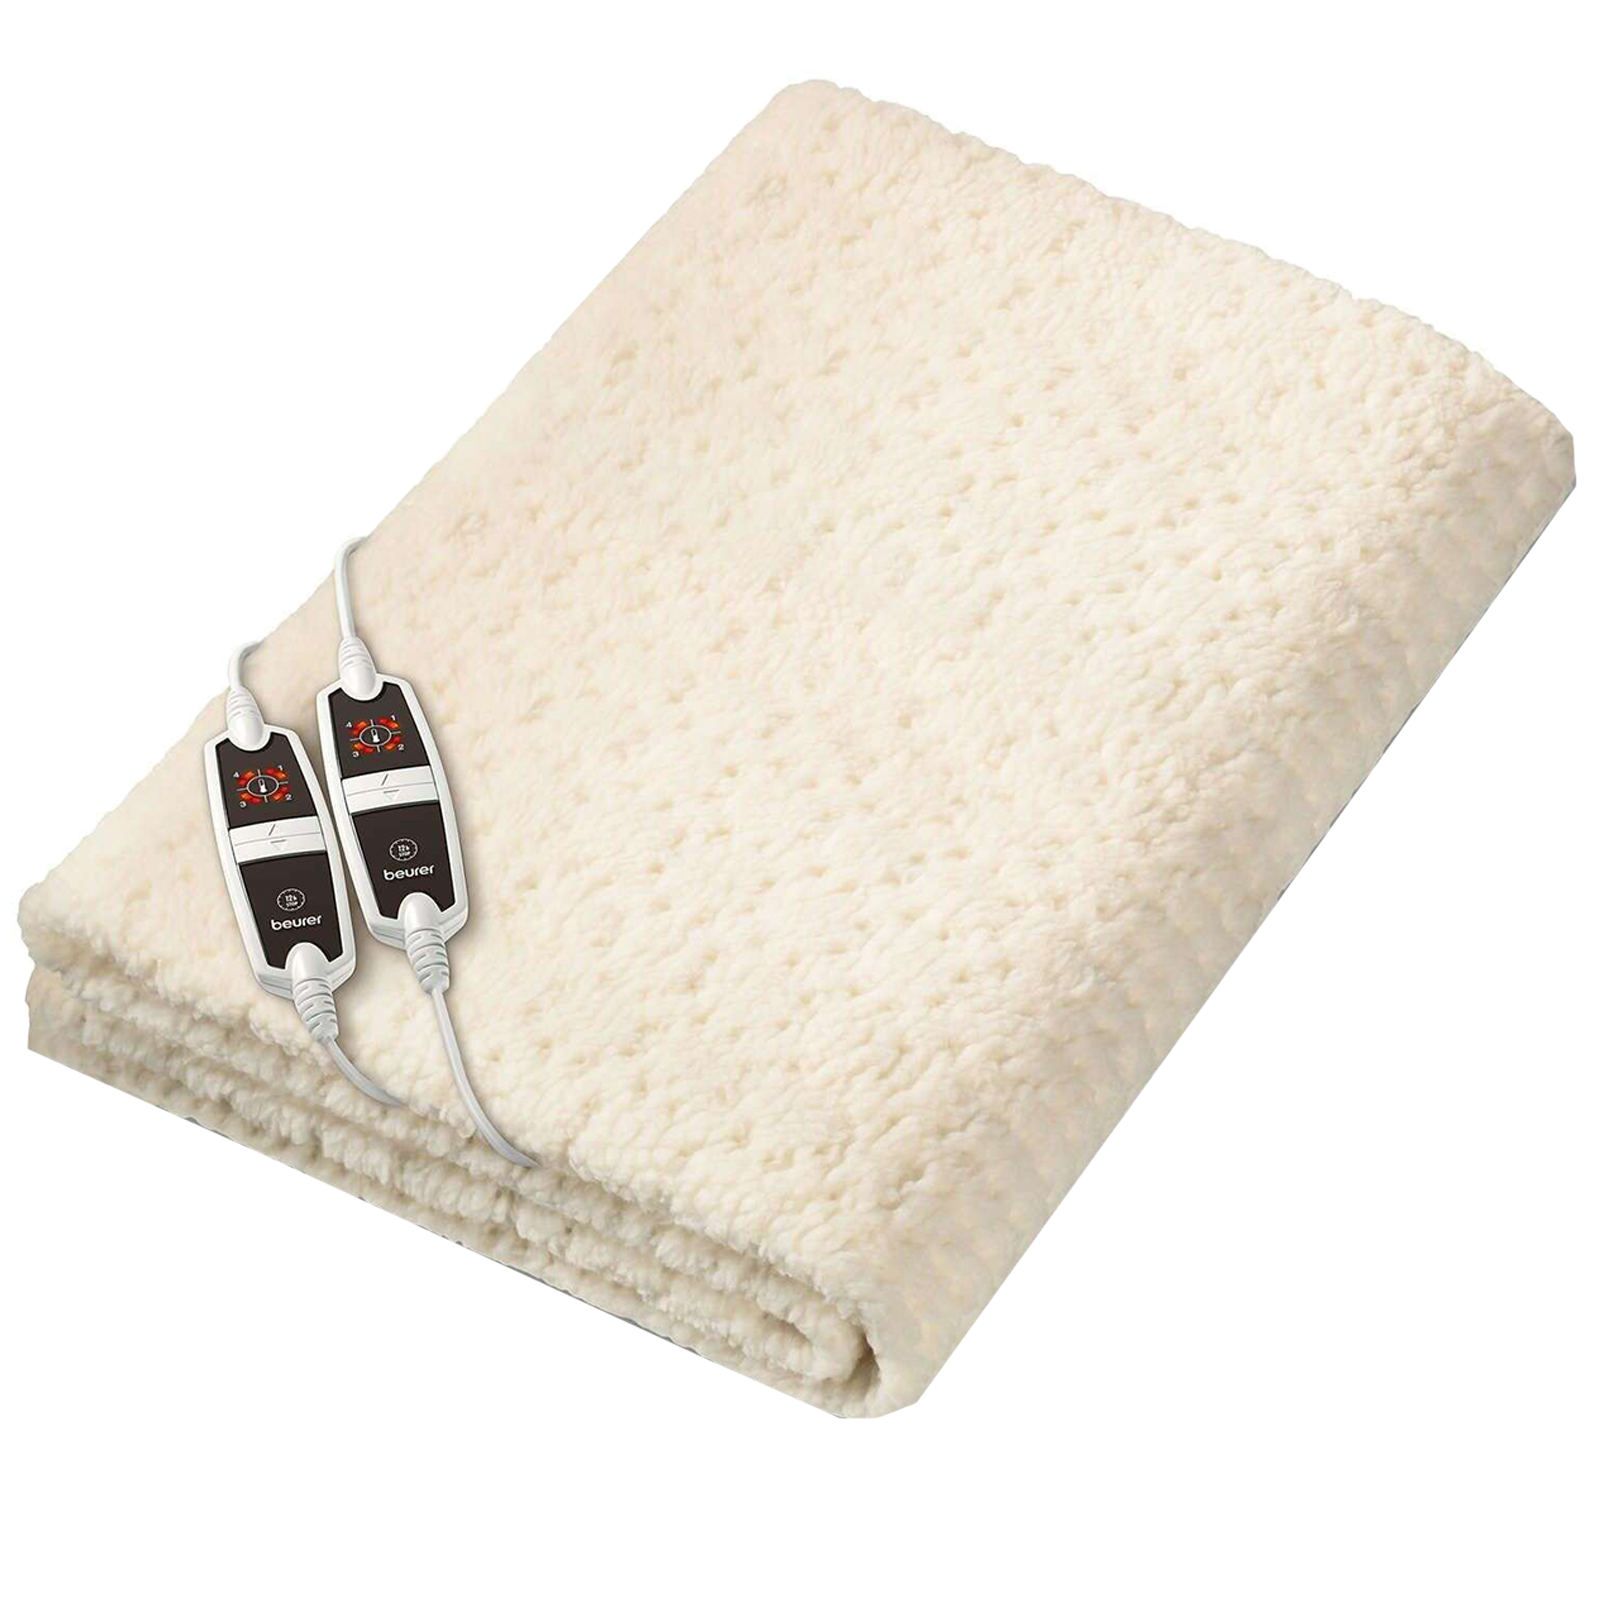 Beurer UB 56 Teddy Double Heated Underblanket (Beurer Safety System, Off-White)_1